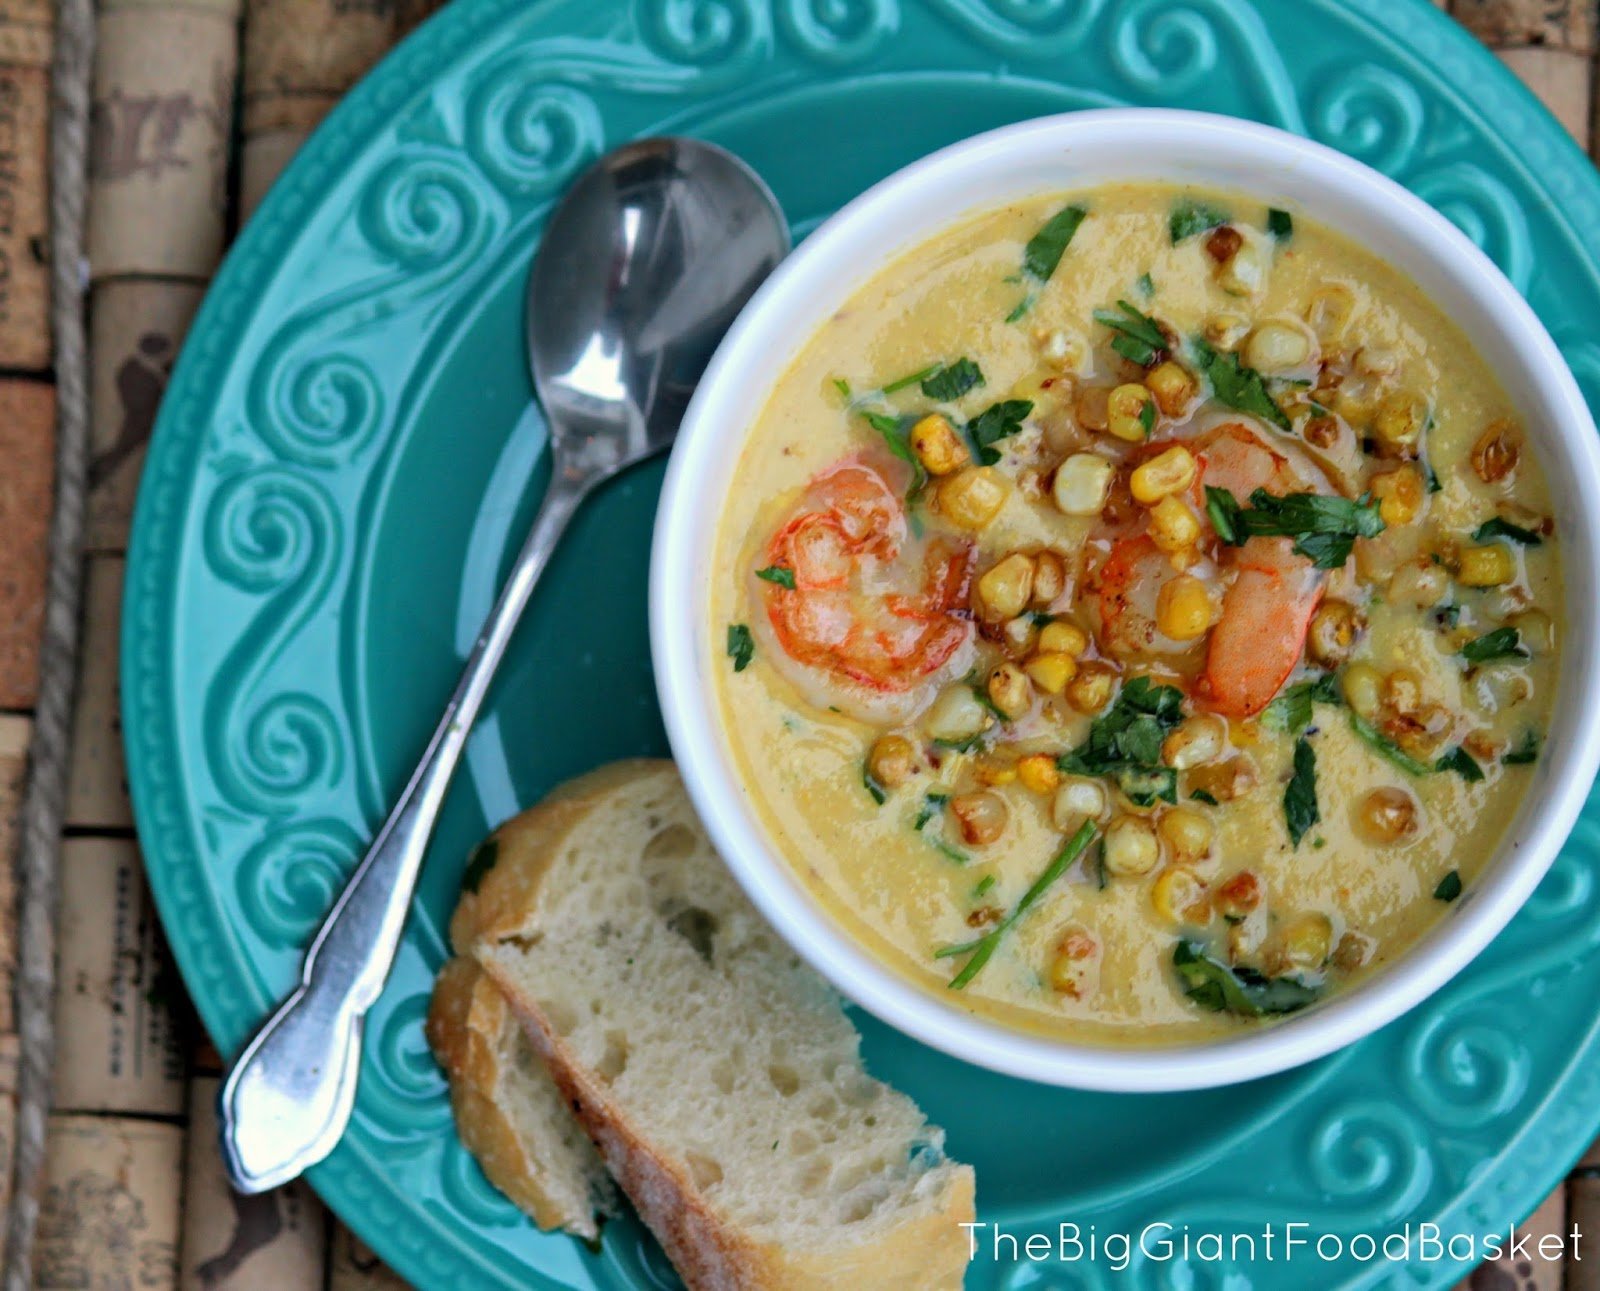 The Big Giant Food Basket: Roasted Corn Chowder with Shrimp